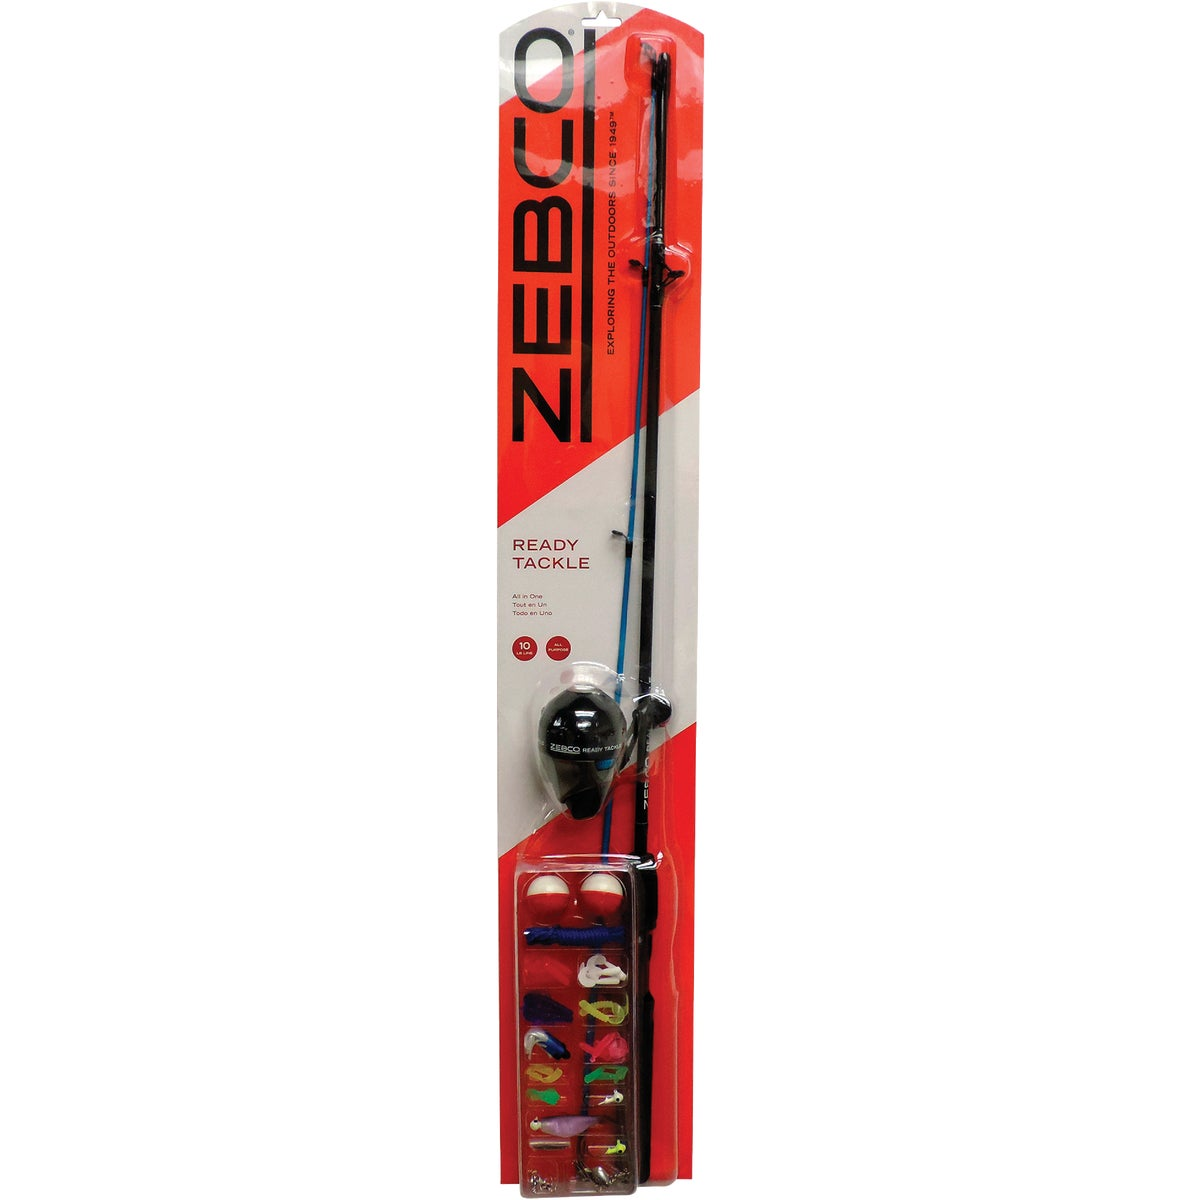 10LB SPINCAST ROD & REEL - RTSCKH by Zebco